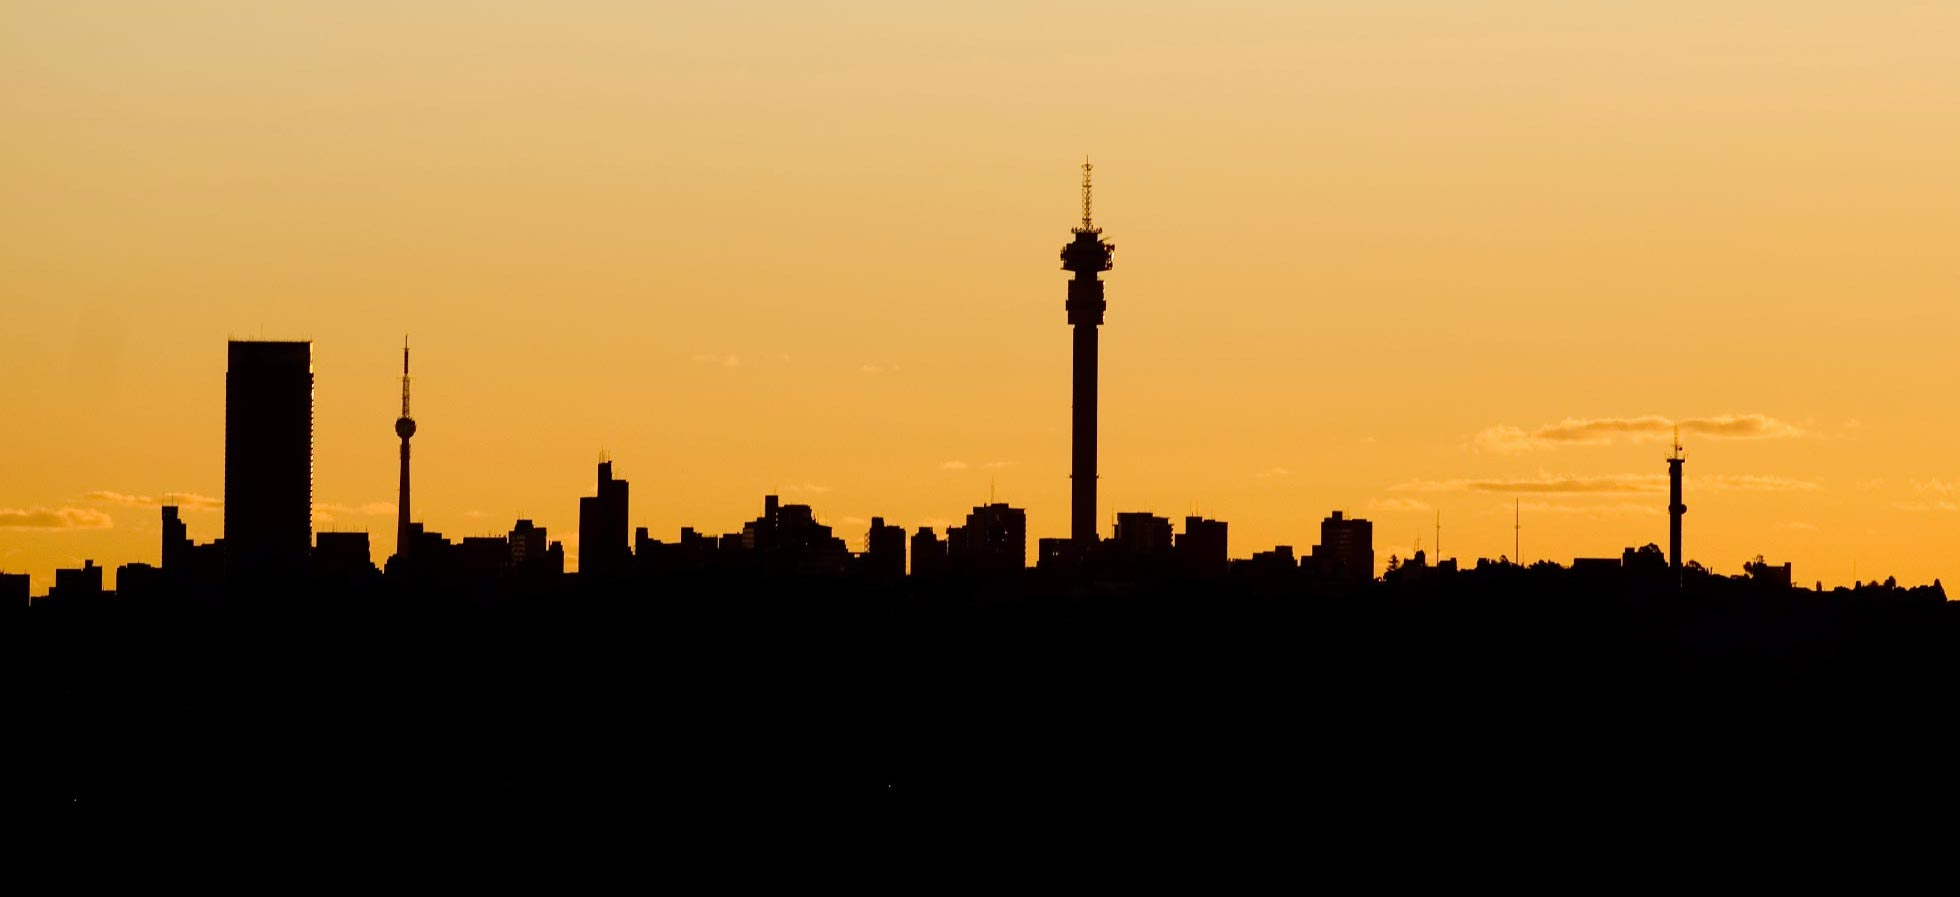 The winston hotel five star big 5 attractions in and around joburg city joburg city skyline at sunset thecheapjerseys Images